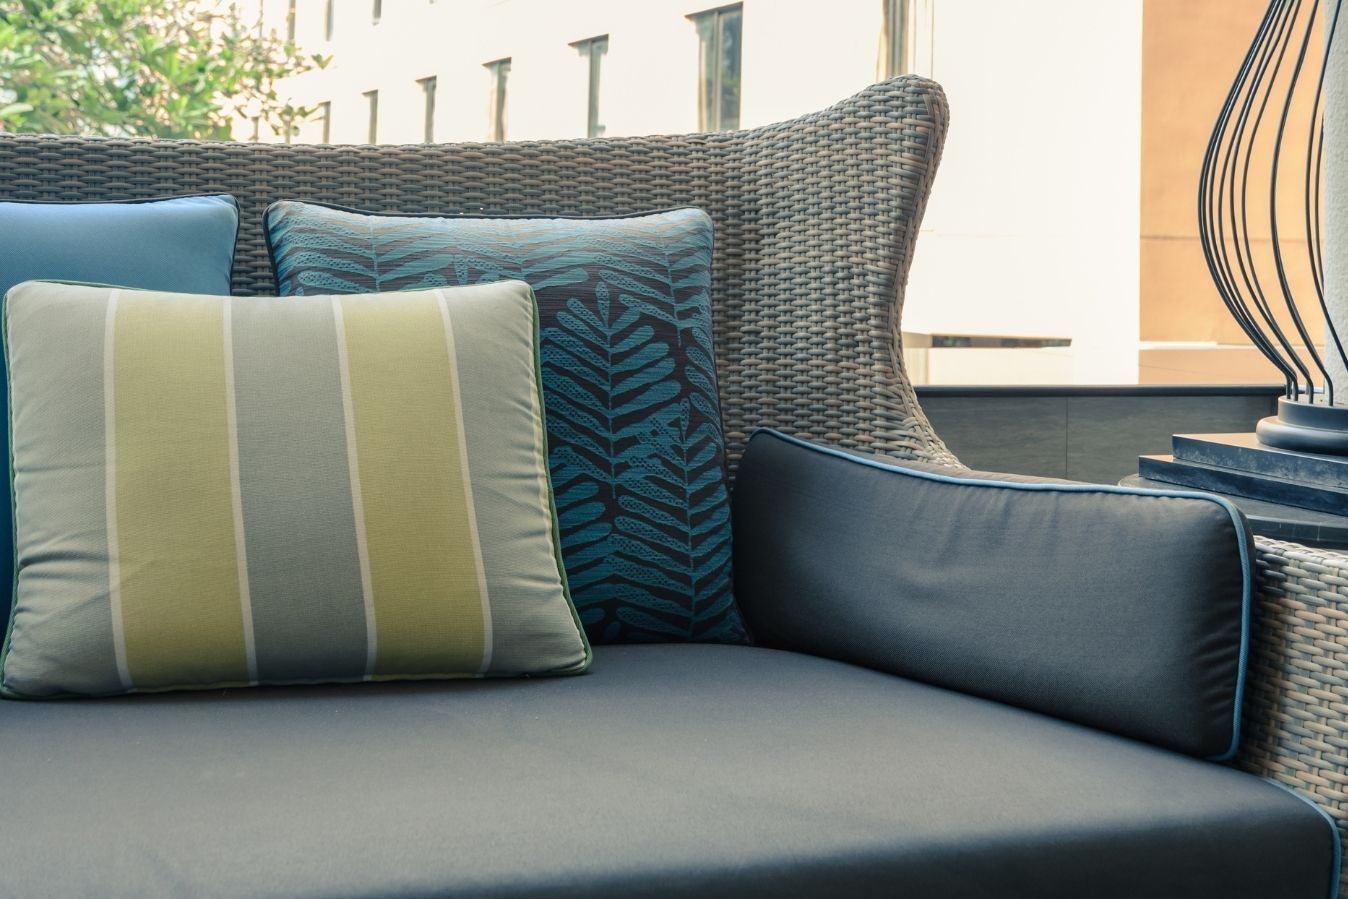 How To Choose the Best Outdoor Fabric